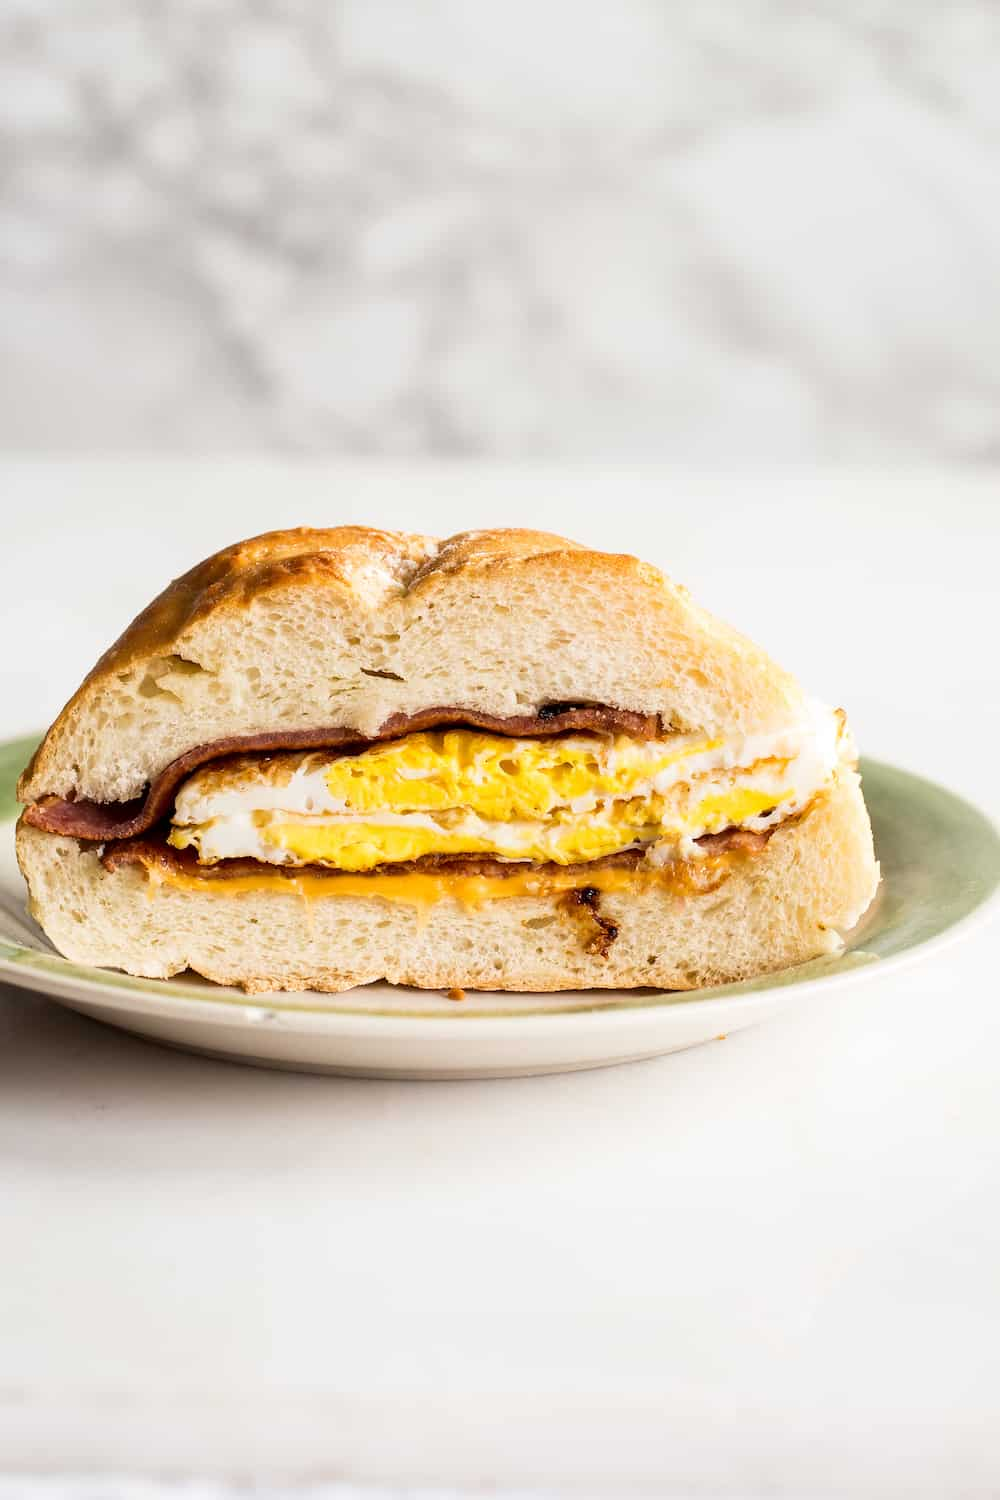 taylor ham or pork roll sandwich with egg and cheese